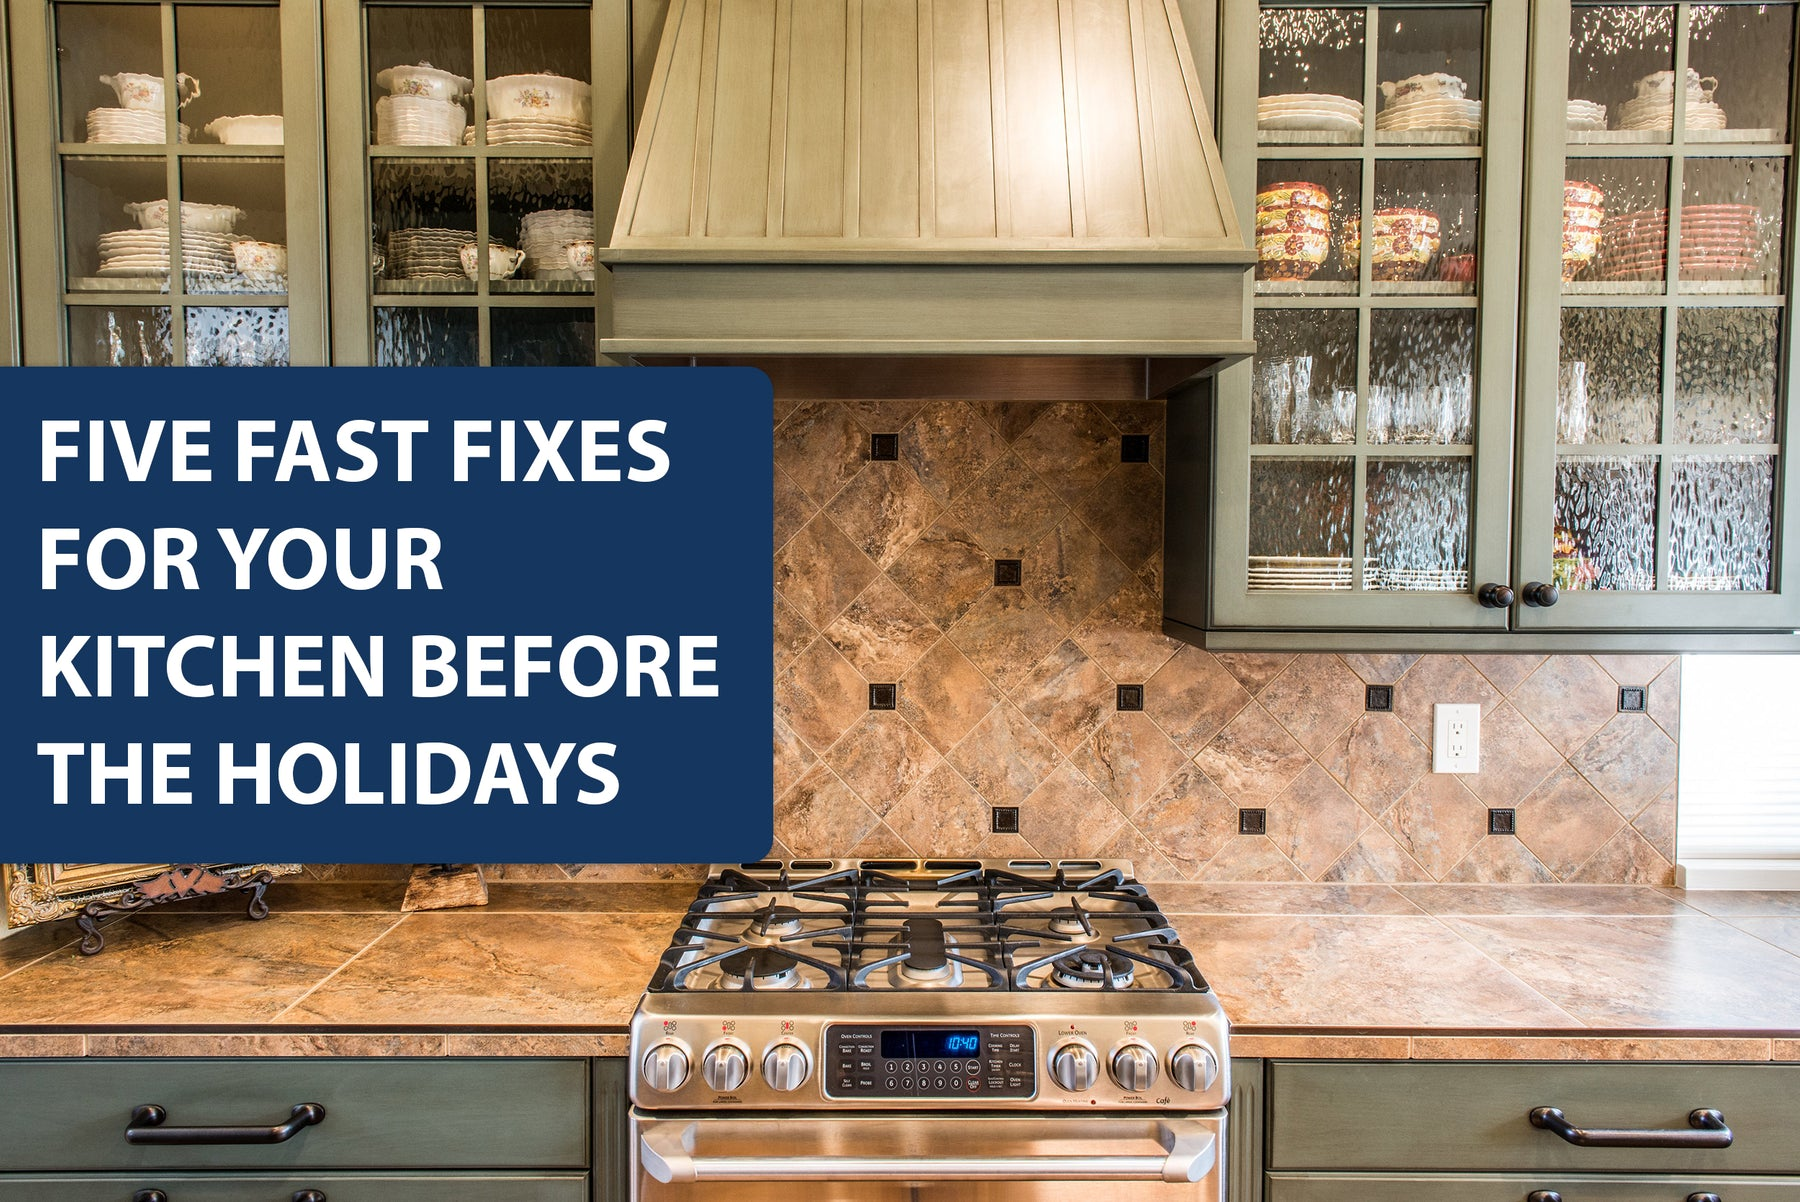 Five Fast Fixes for Your Kitchen Before the Holidays